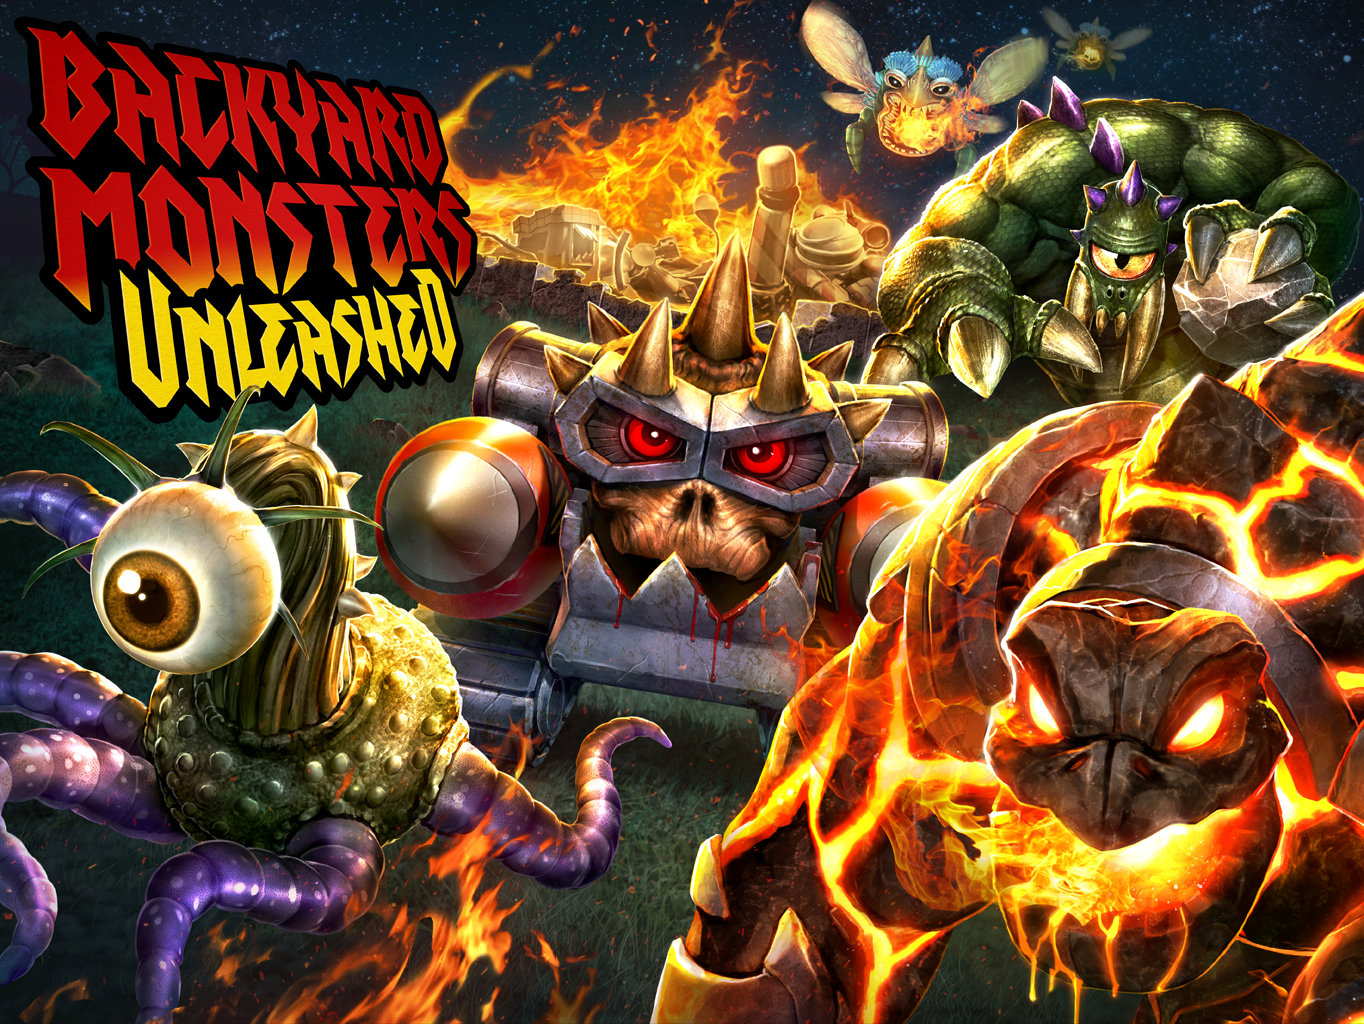 Backyard Monsters Unleashed Key Art